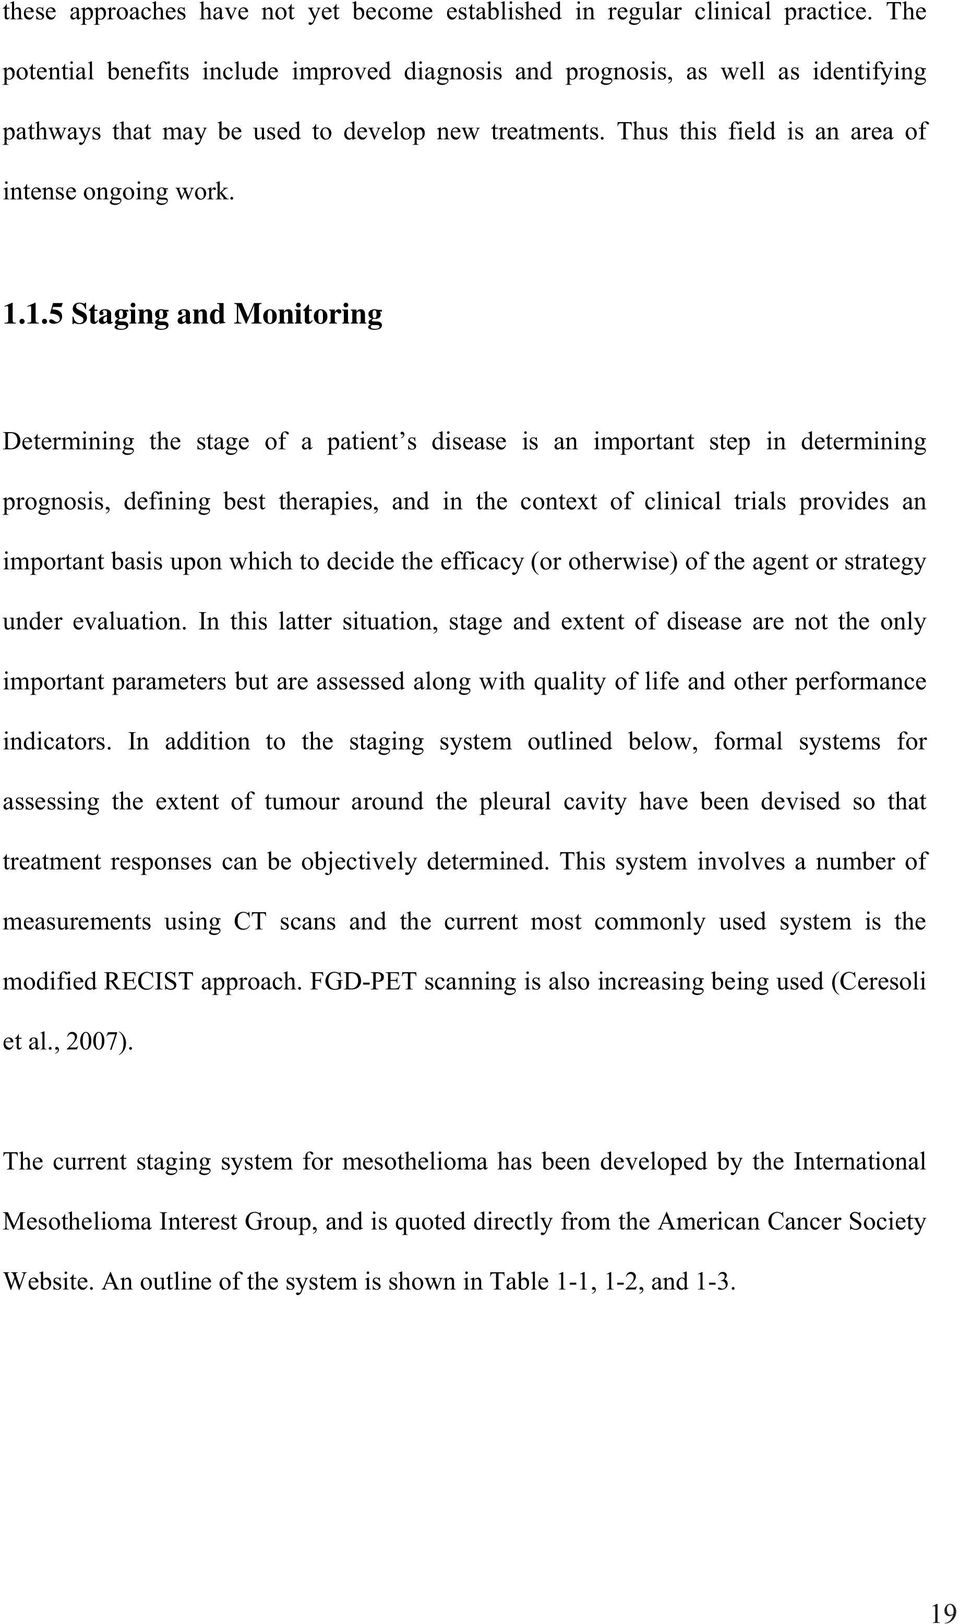 1.5 Staging and Monitoring Determining the stage of a patient s disease is an important step in determining prognosis, defining best therapies, and in the context of clinical trials provides an